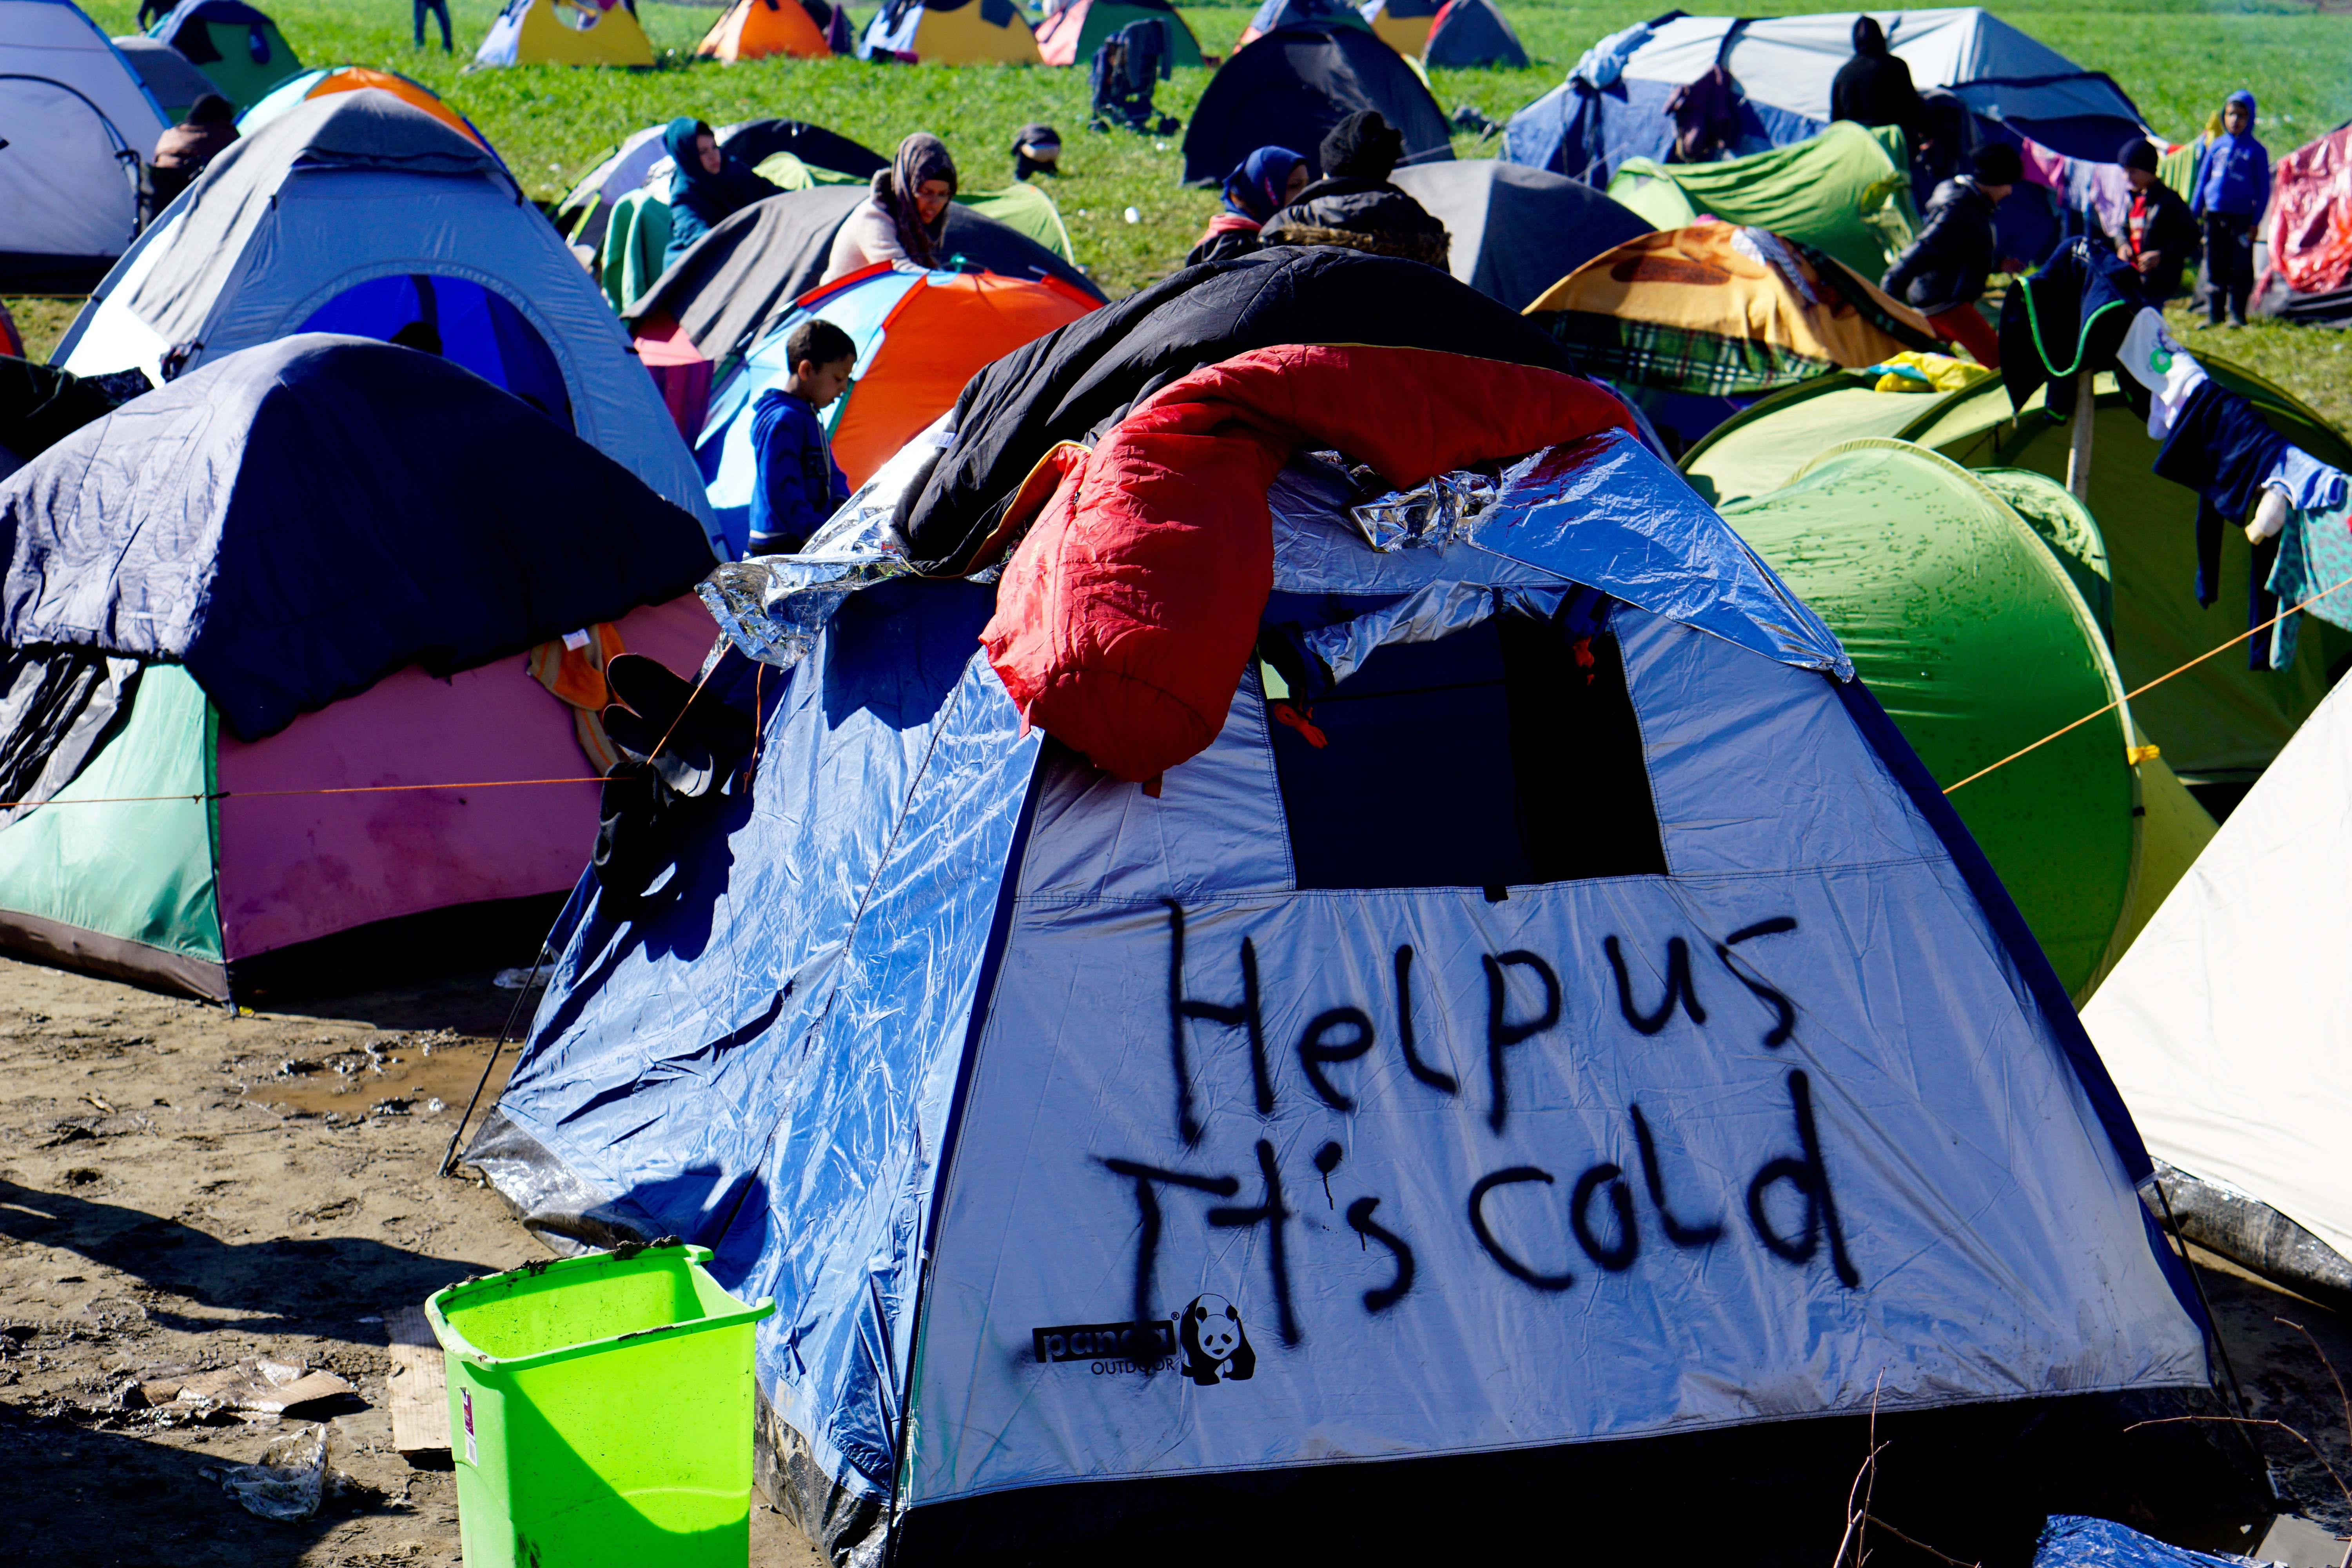 A tent bears an appeal for aid to migrants encamped in Idomeni, Greece, near the border with Macedonia, March 4, 2016.